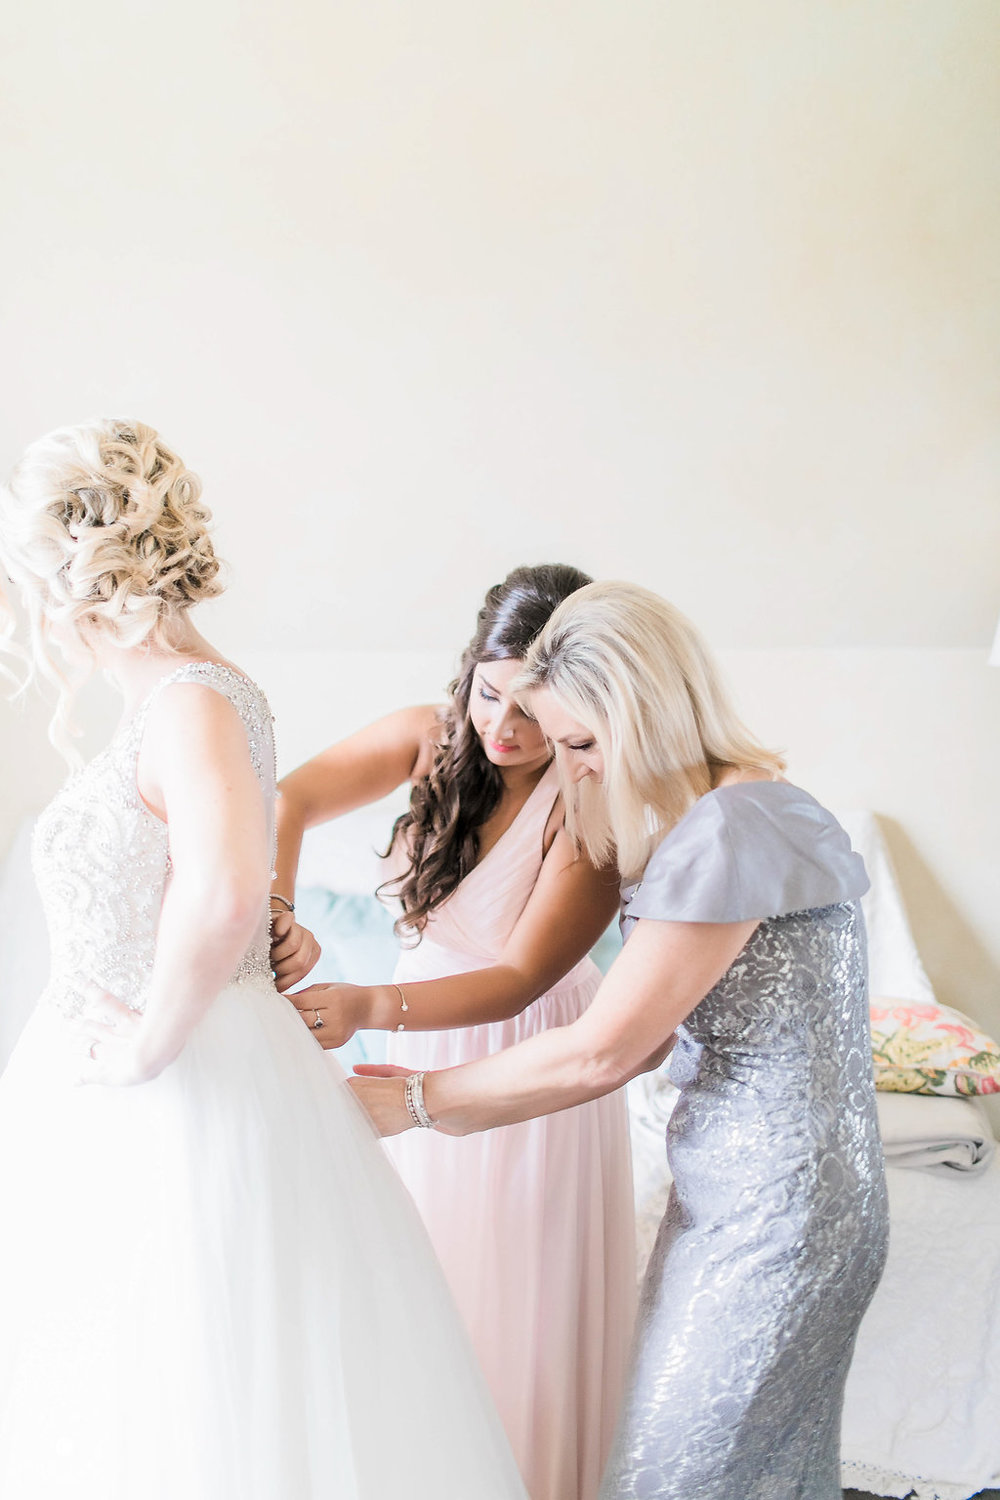 KimballBallroomWedding_GettingReady_KenzieDrew_Portraits_Catherinerhodesphotography(51of190)-Edit.jpg